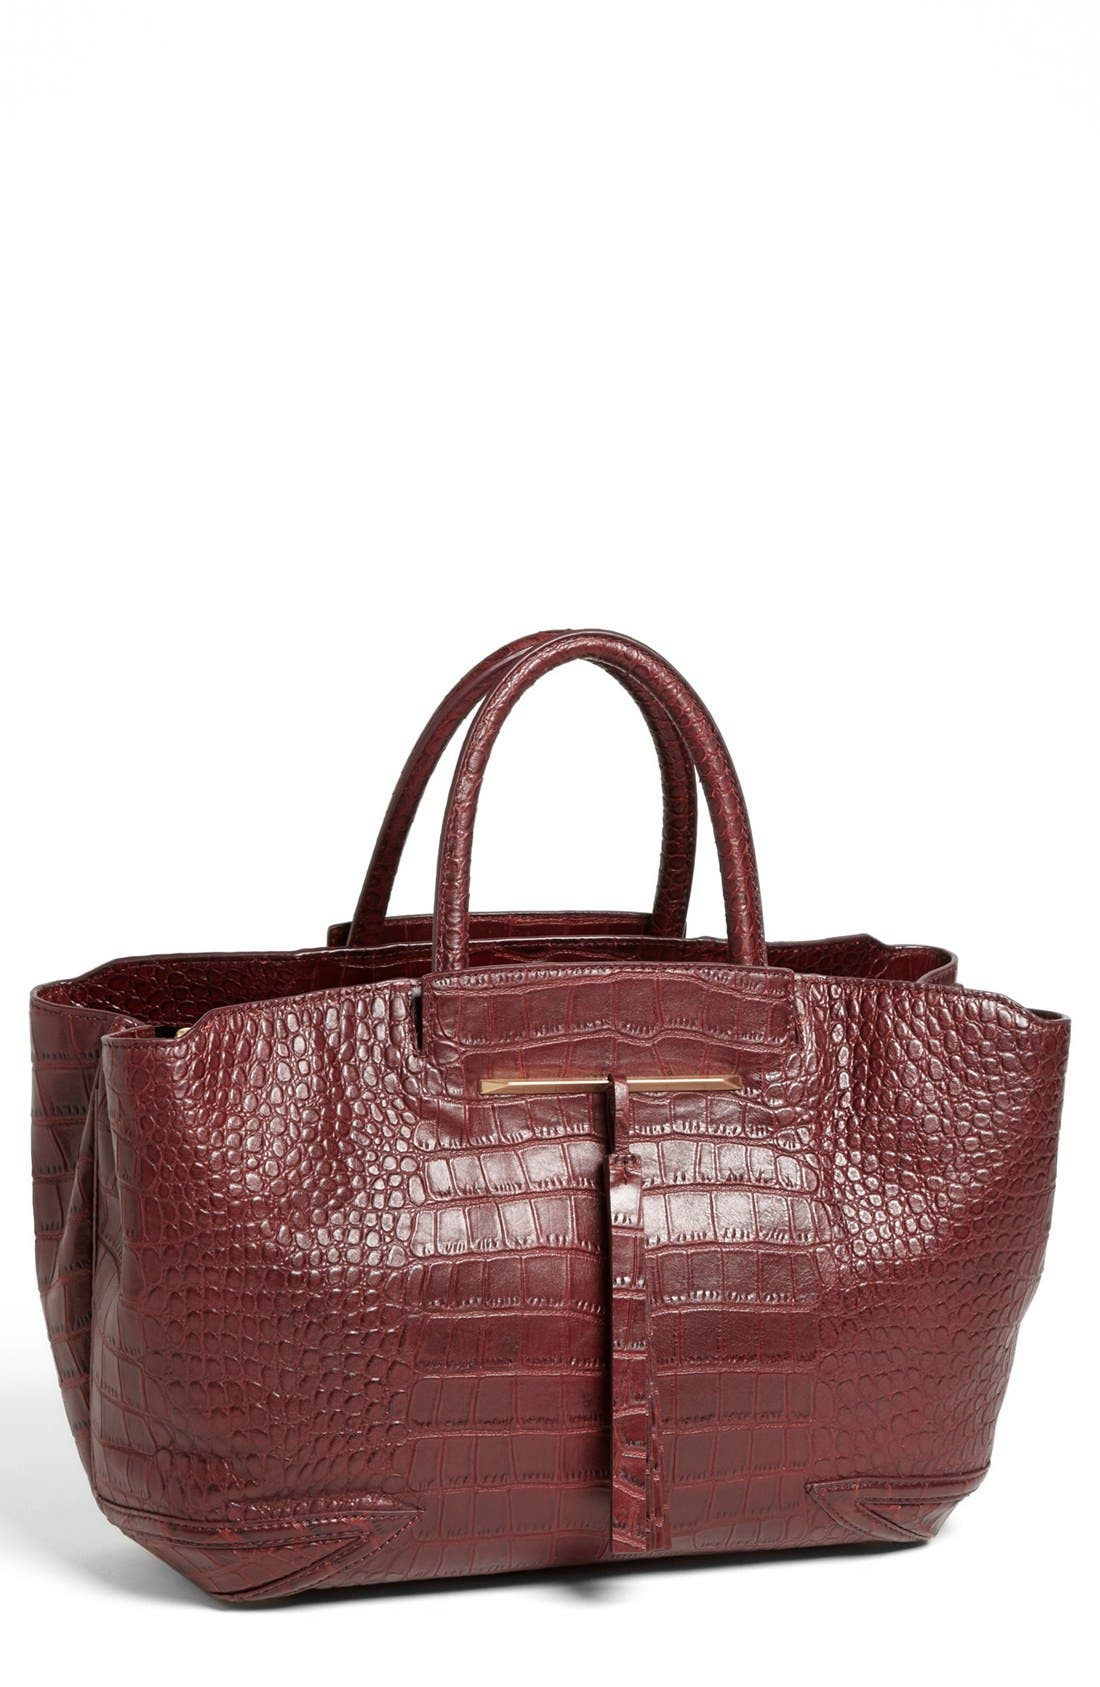 Alternate Image 1 Selected - B Brian Atwood 'Grace' Tote